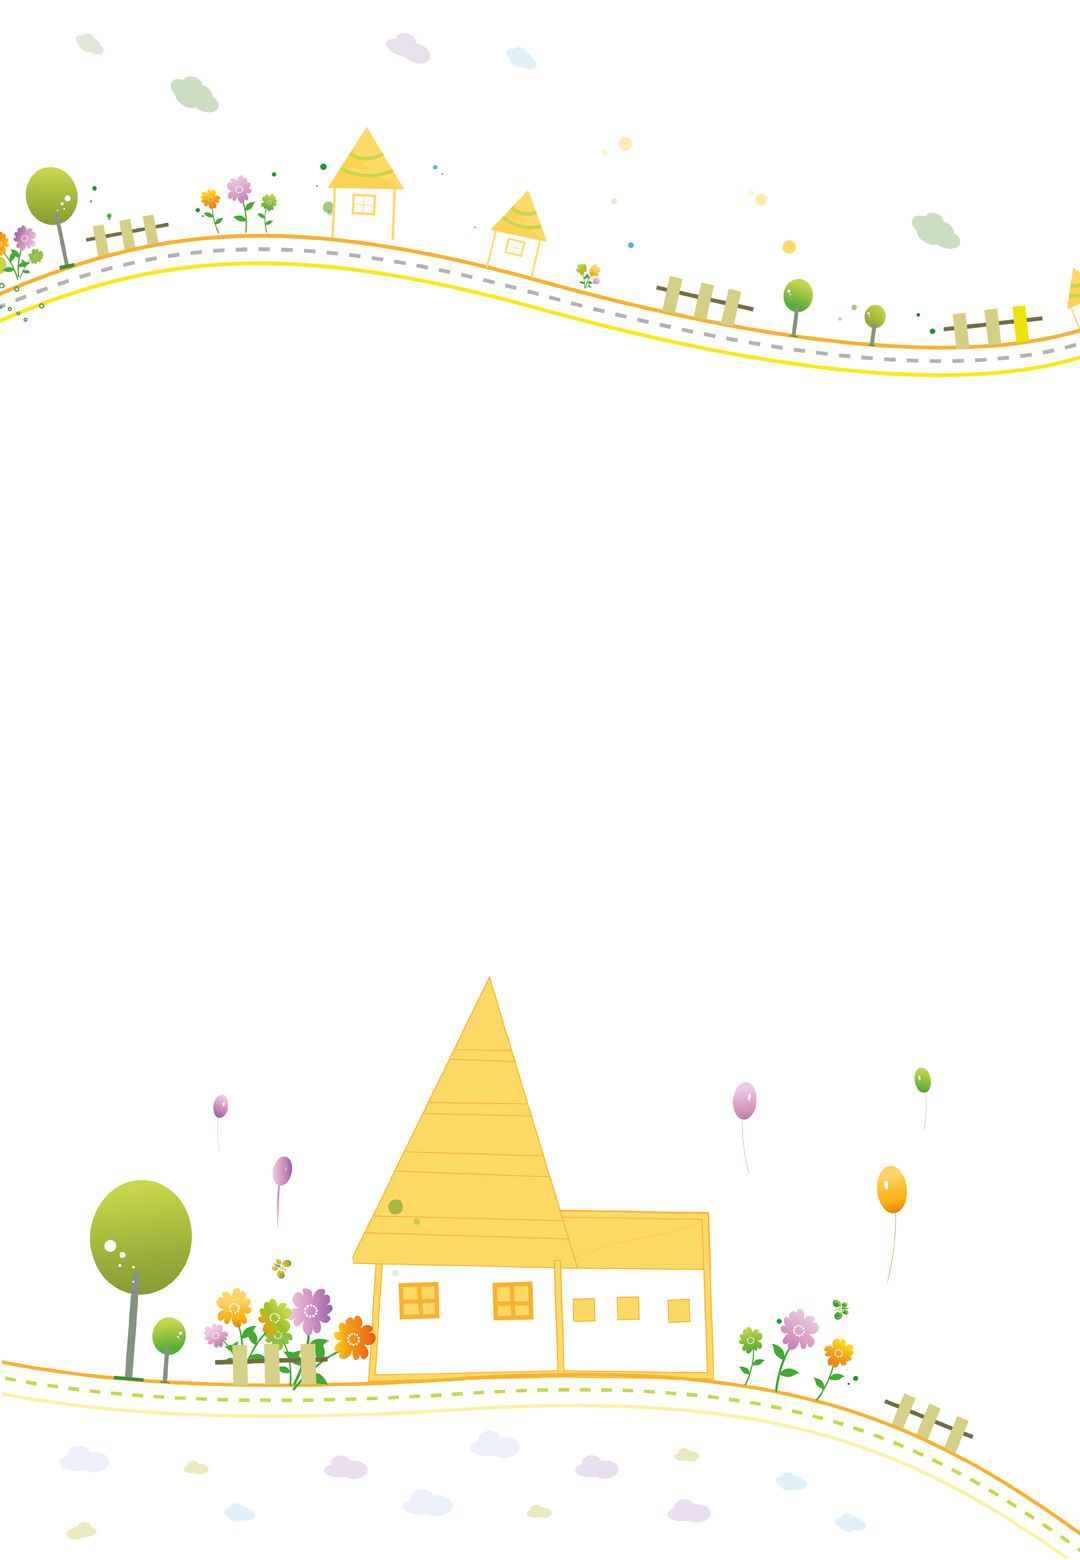 000 Unforgettable Housewarming Party Invitation Template Highest Clarity  Templates Free Download CardFull